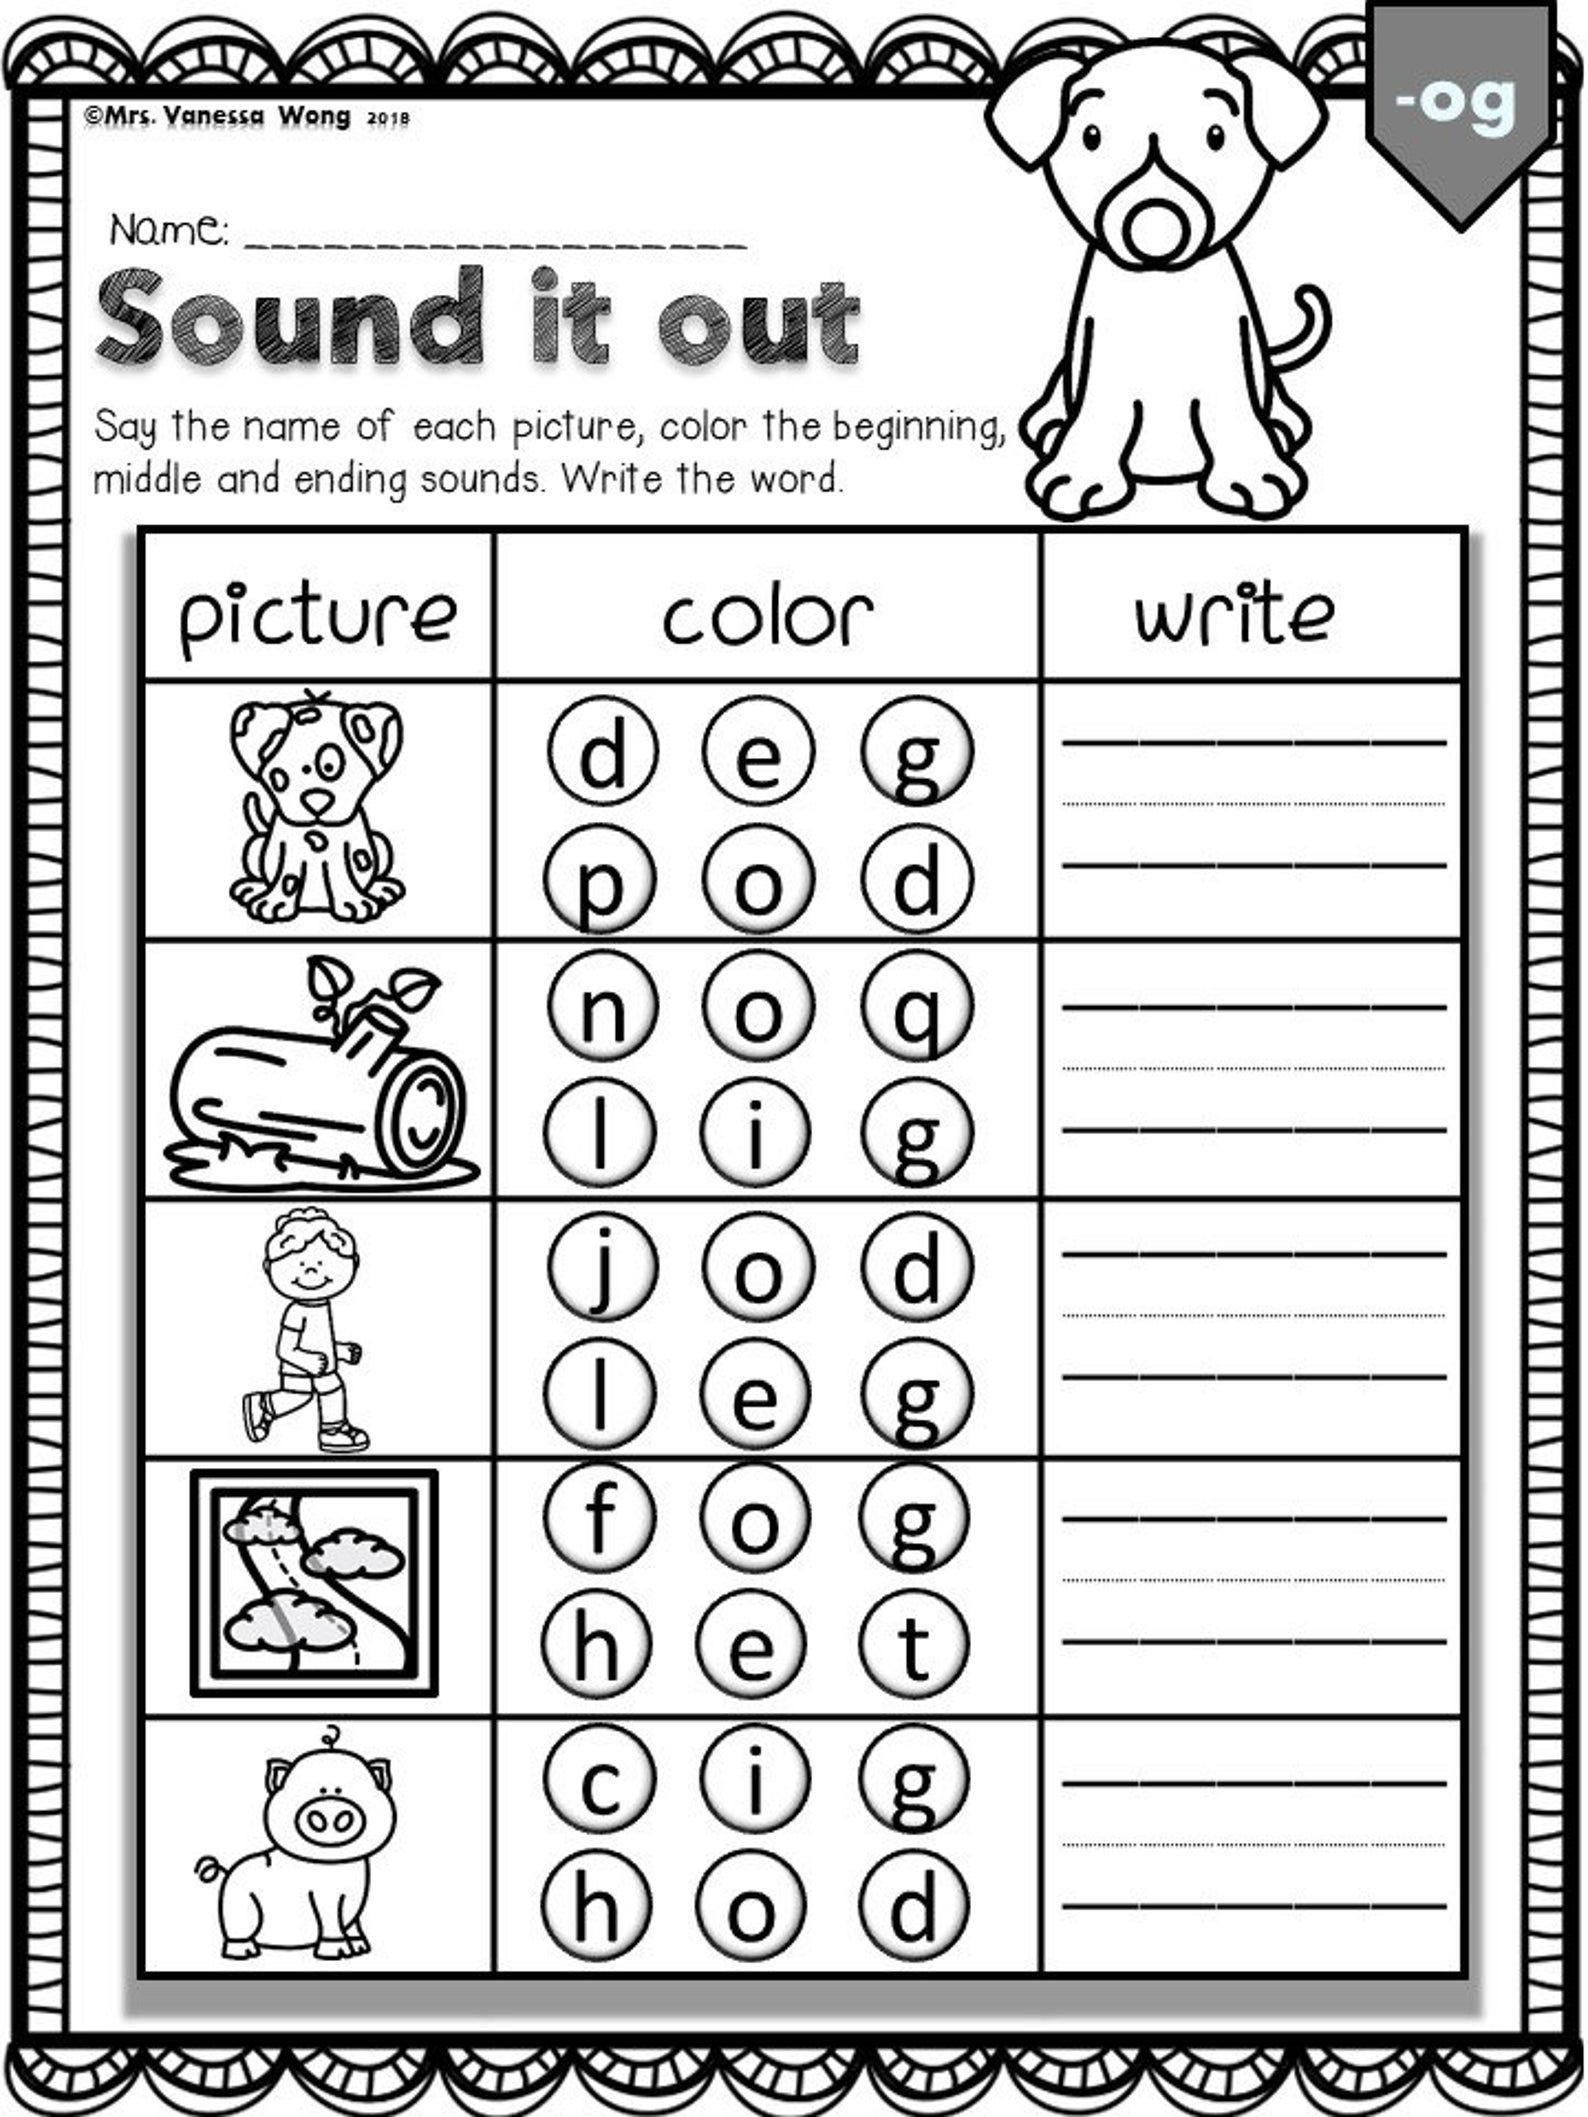 Phonics Worksheets Cvc Sound It Out Kindergarten First Grade Distance Learning In 2021 Phonics Worksheets Phonics Cvc Phonics Activities [ 2117 x 1588 Pixel ]